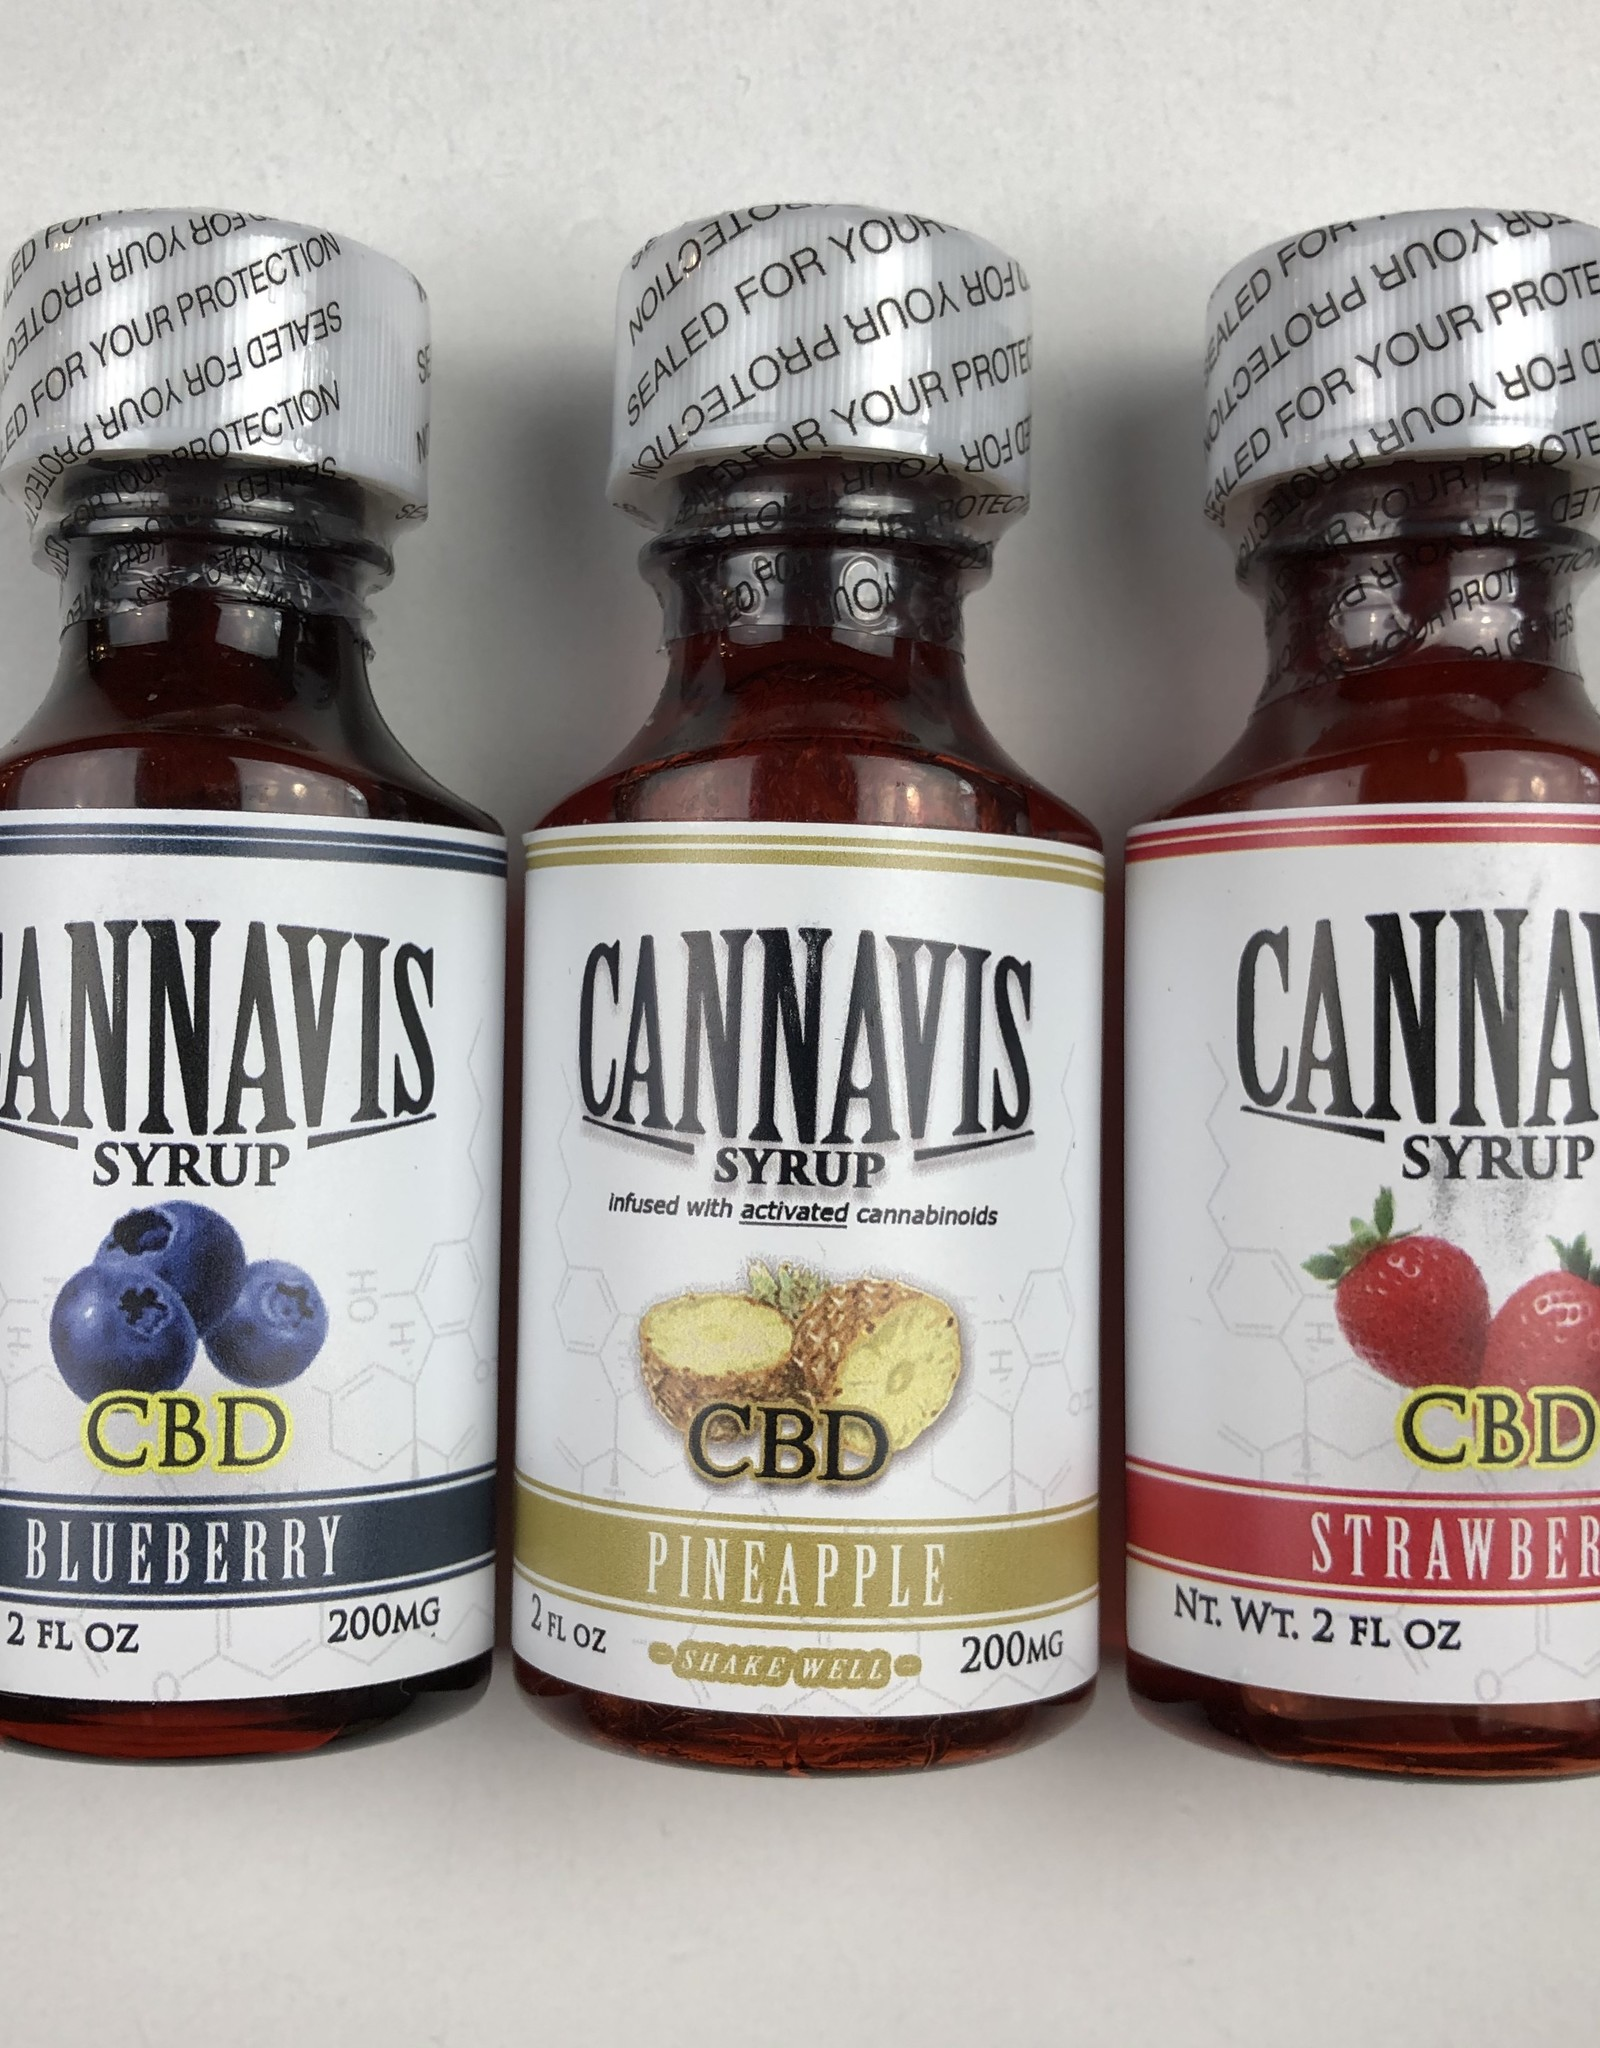 CANNAVIS CANNAVIS CBD 2 OUNCE SYRUP - (ALL FLAVORS)